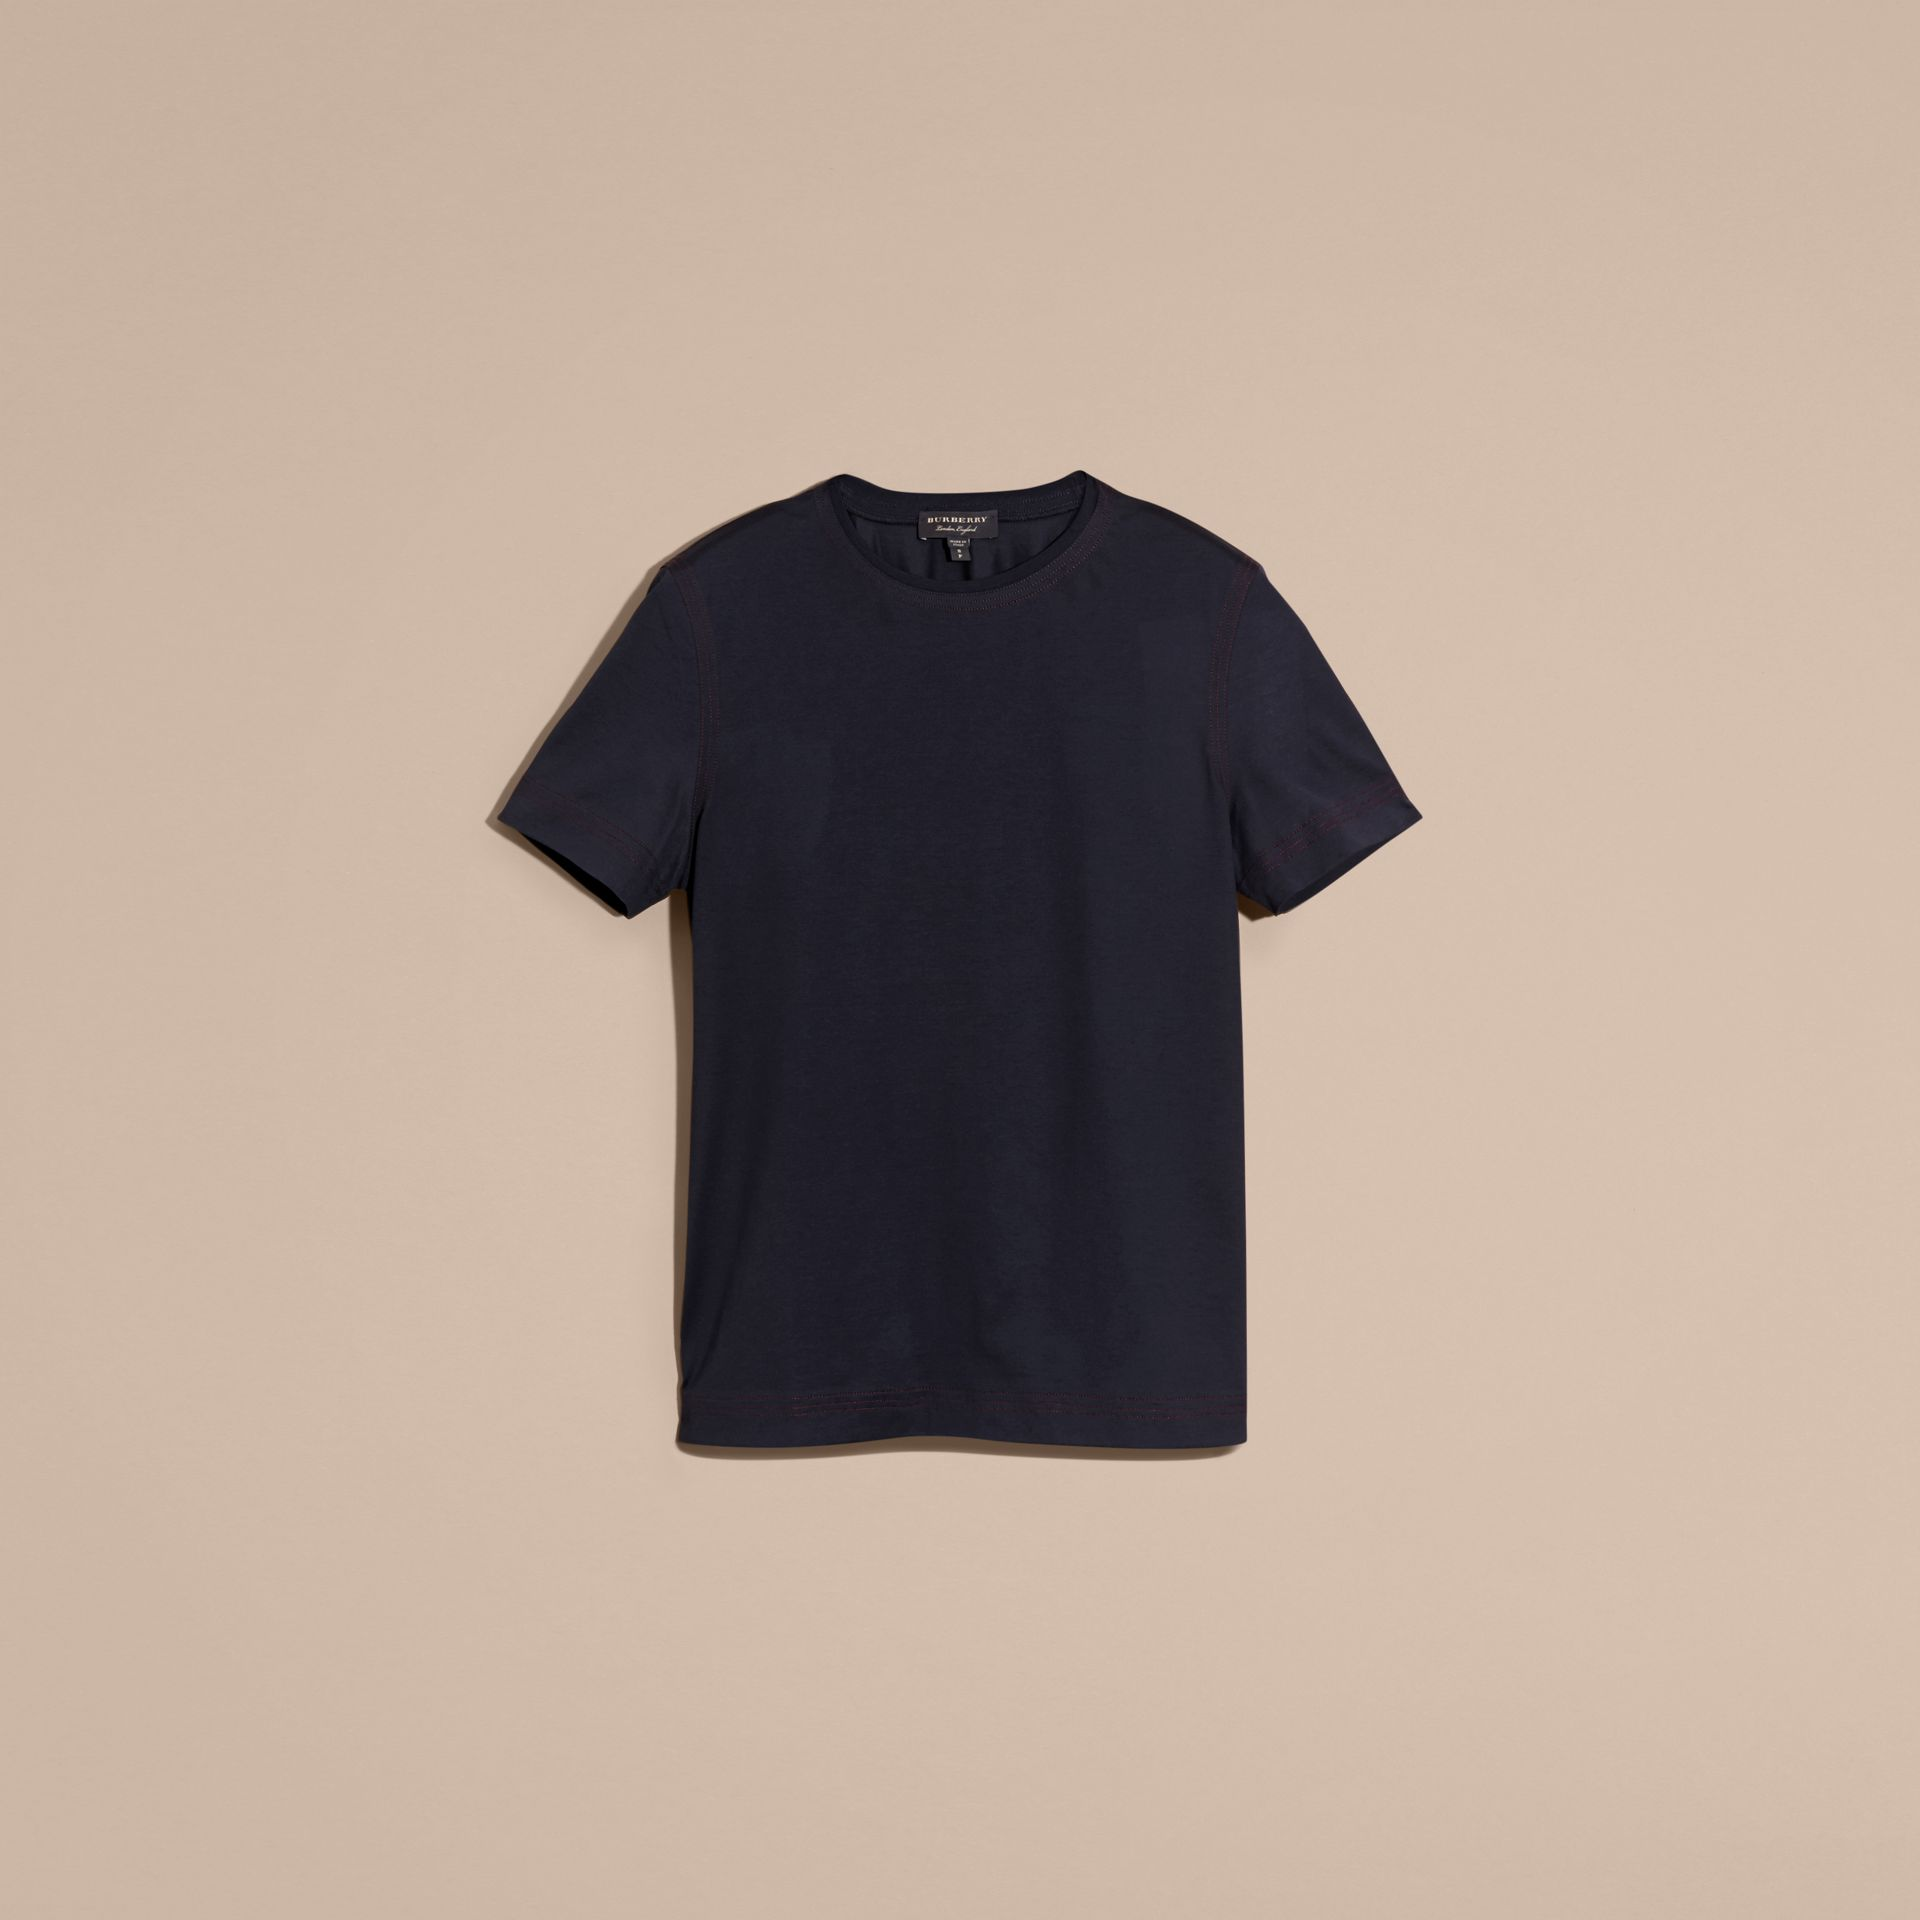 Navy Topstitch Detail Cotton T-shirt Navy - gallery image 4